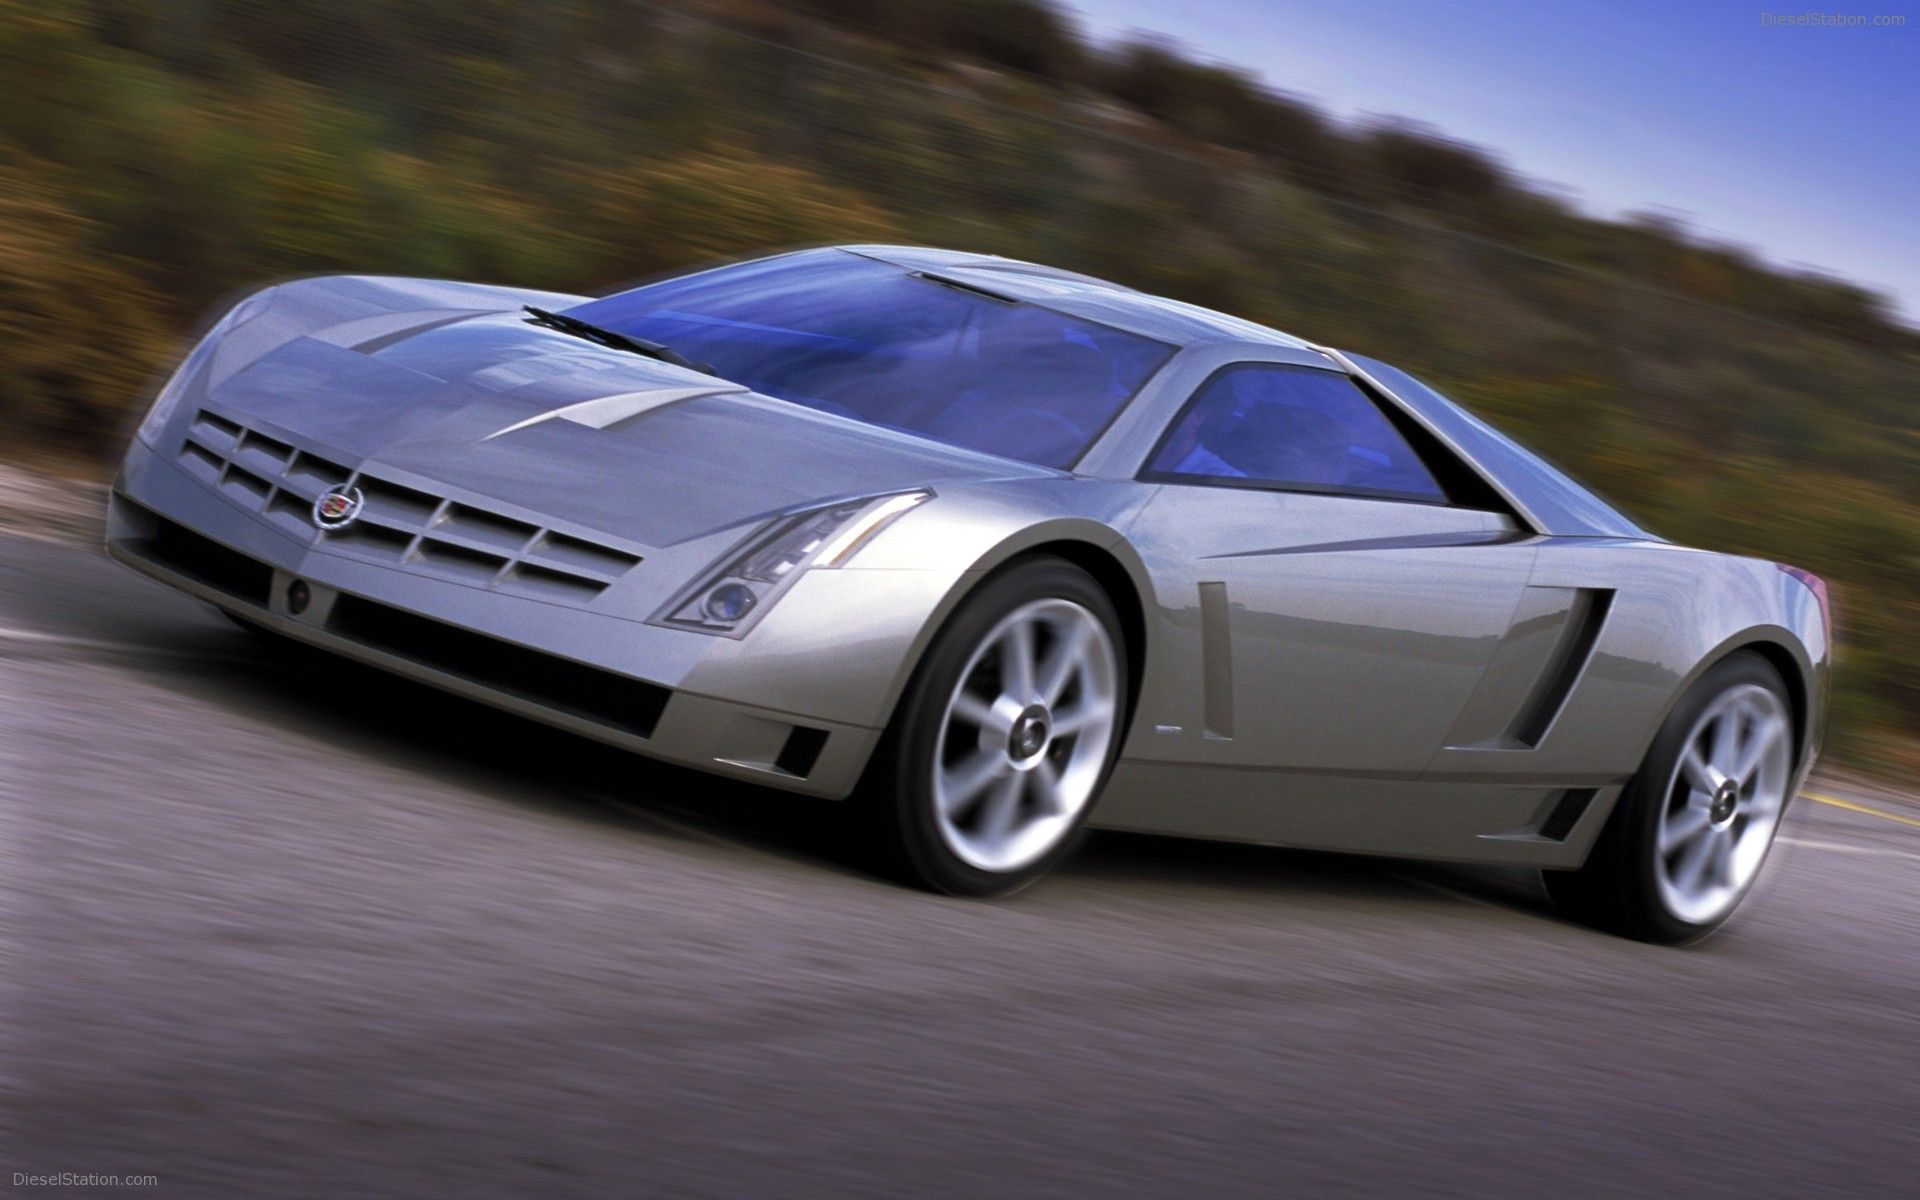 Awesome Attractive Supercars Under 20k